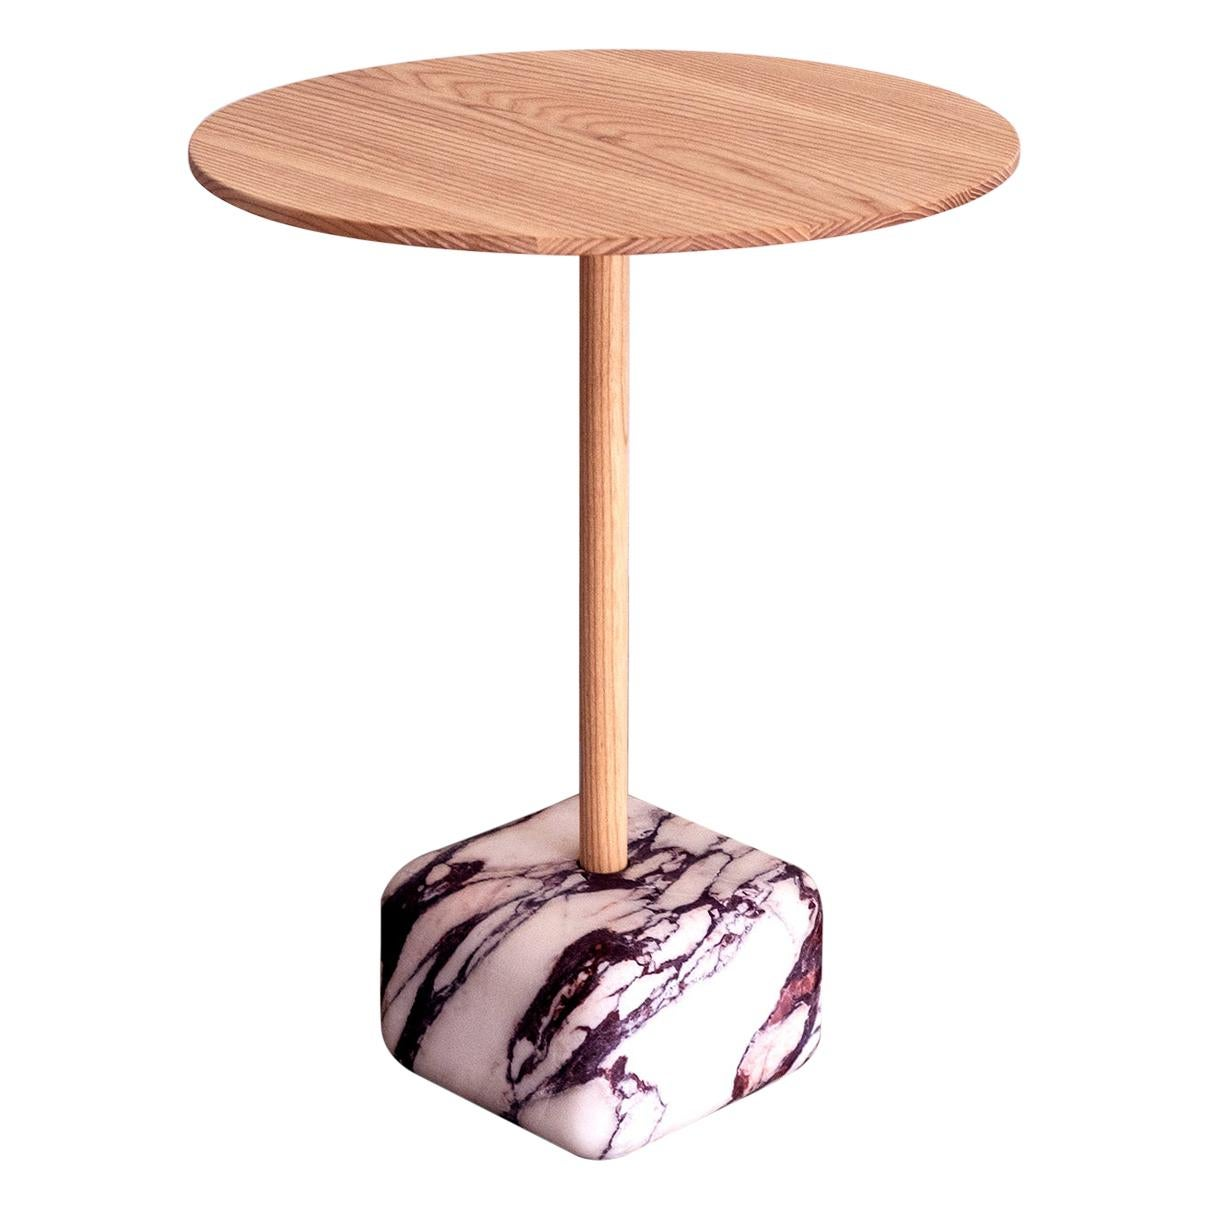 Contemporary Side Table, Arabescato Viola Marble and Ash Wood by Erik Olovsson